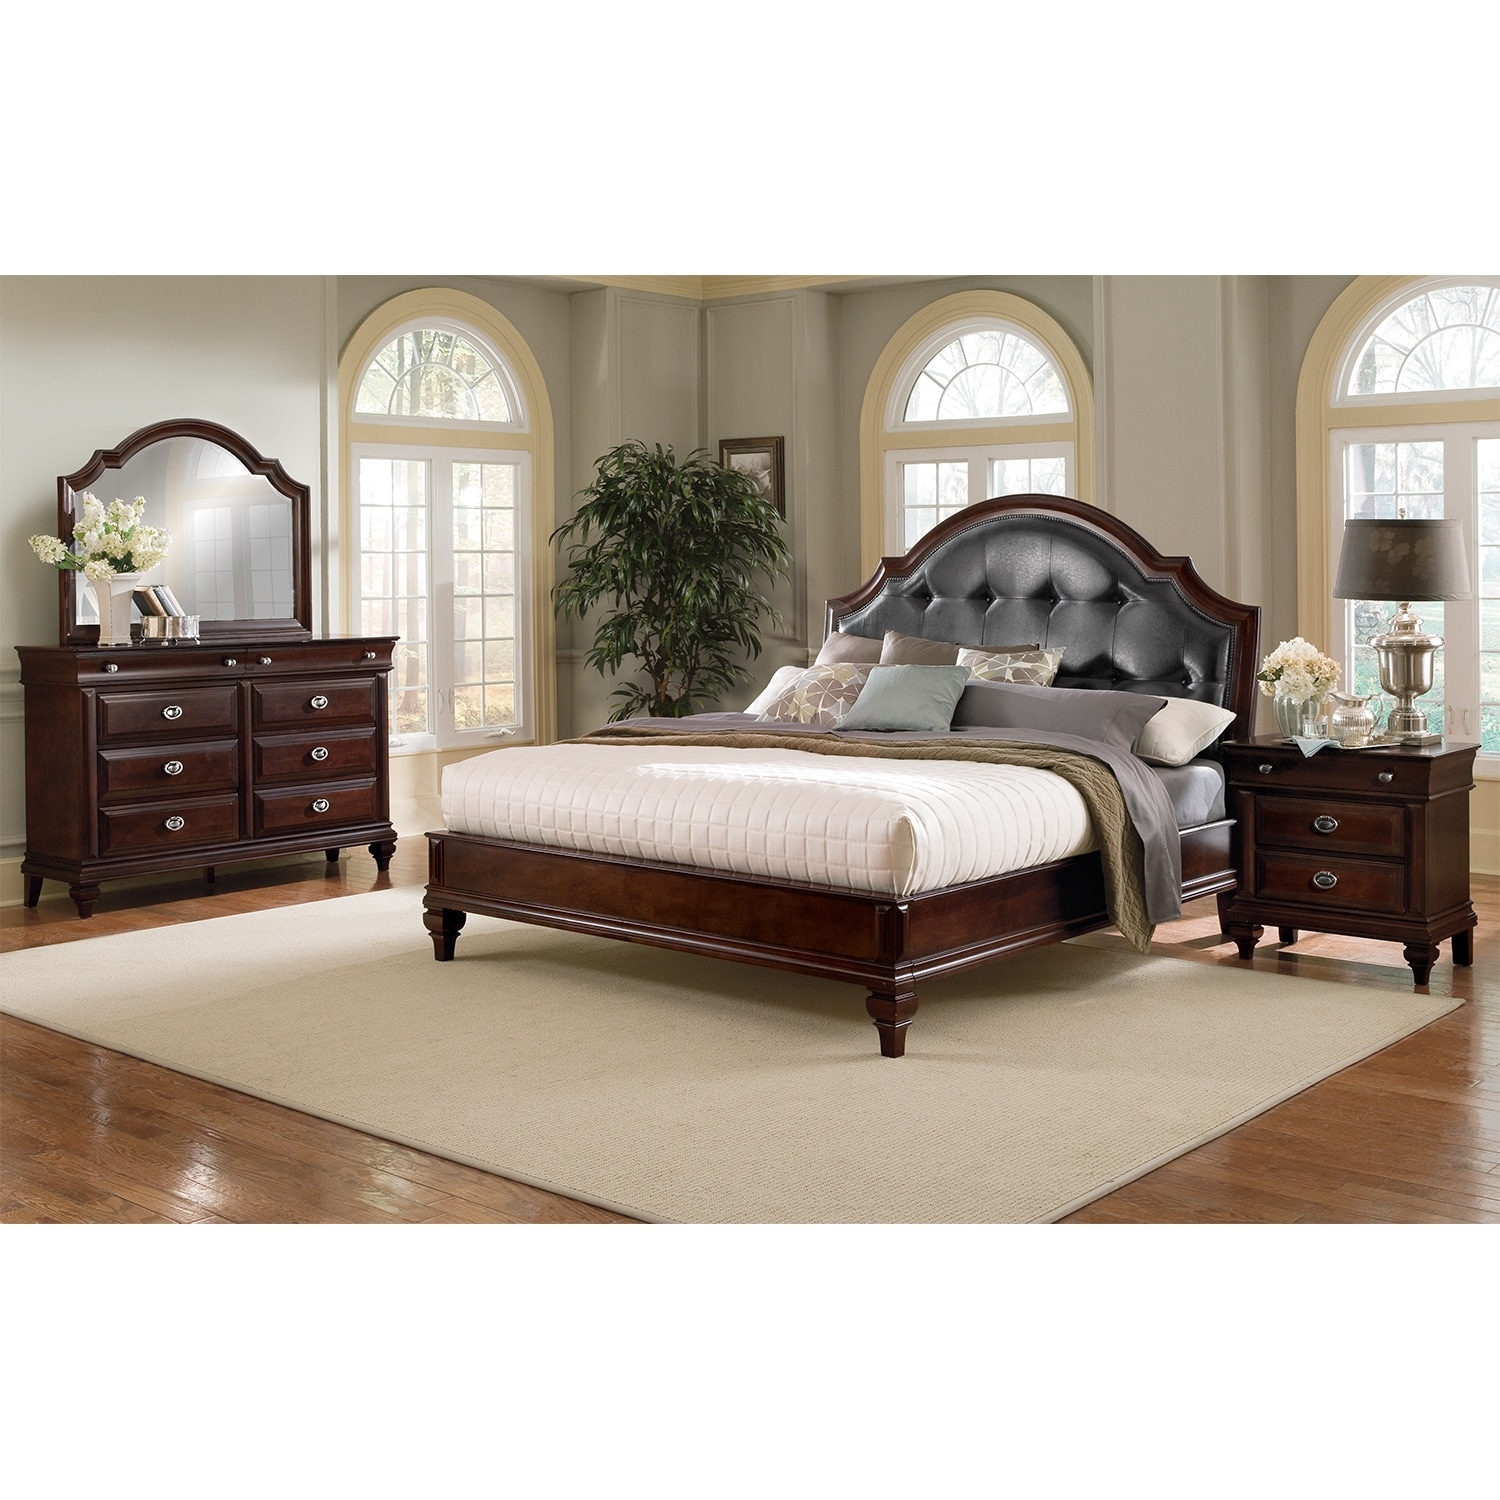 Custom Upholstered King Bedroom Set Exterior